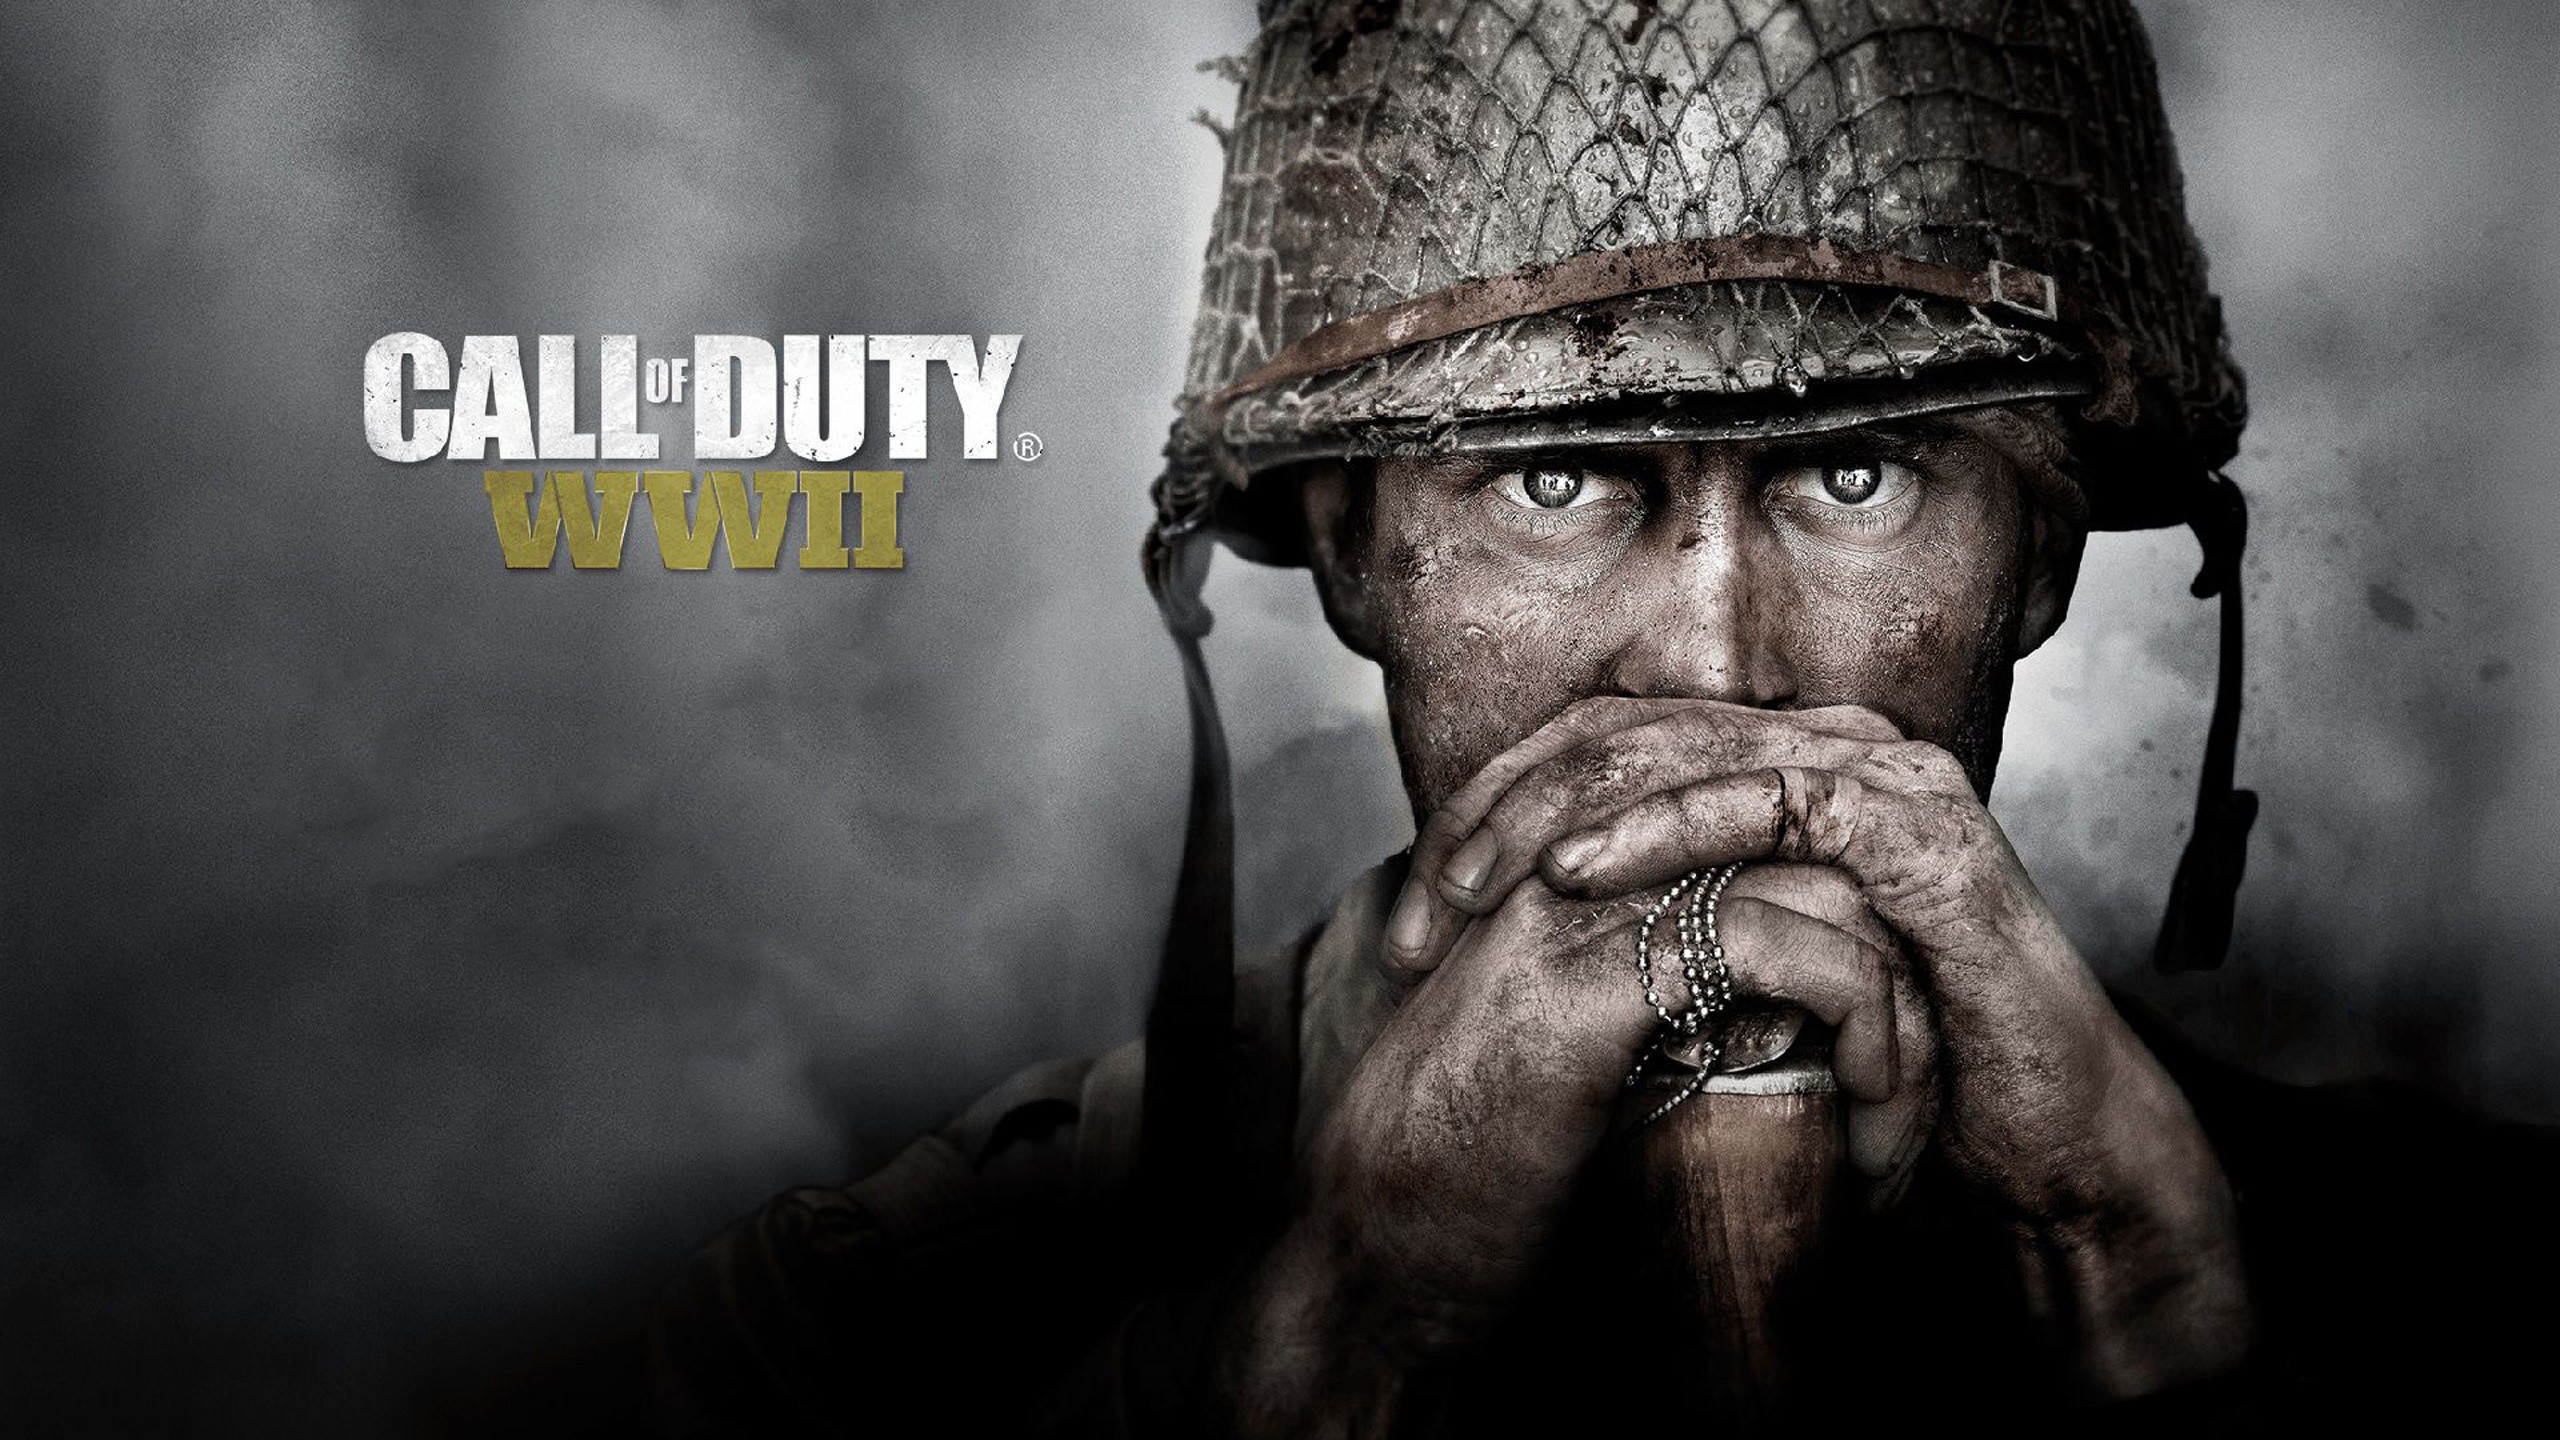 Call of Duty WWII, HD, 2017